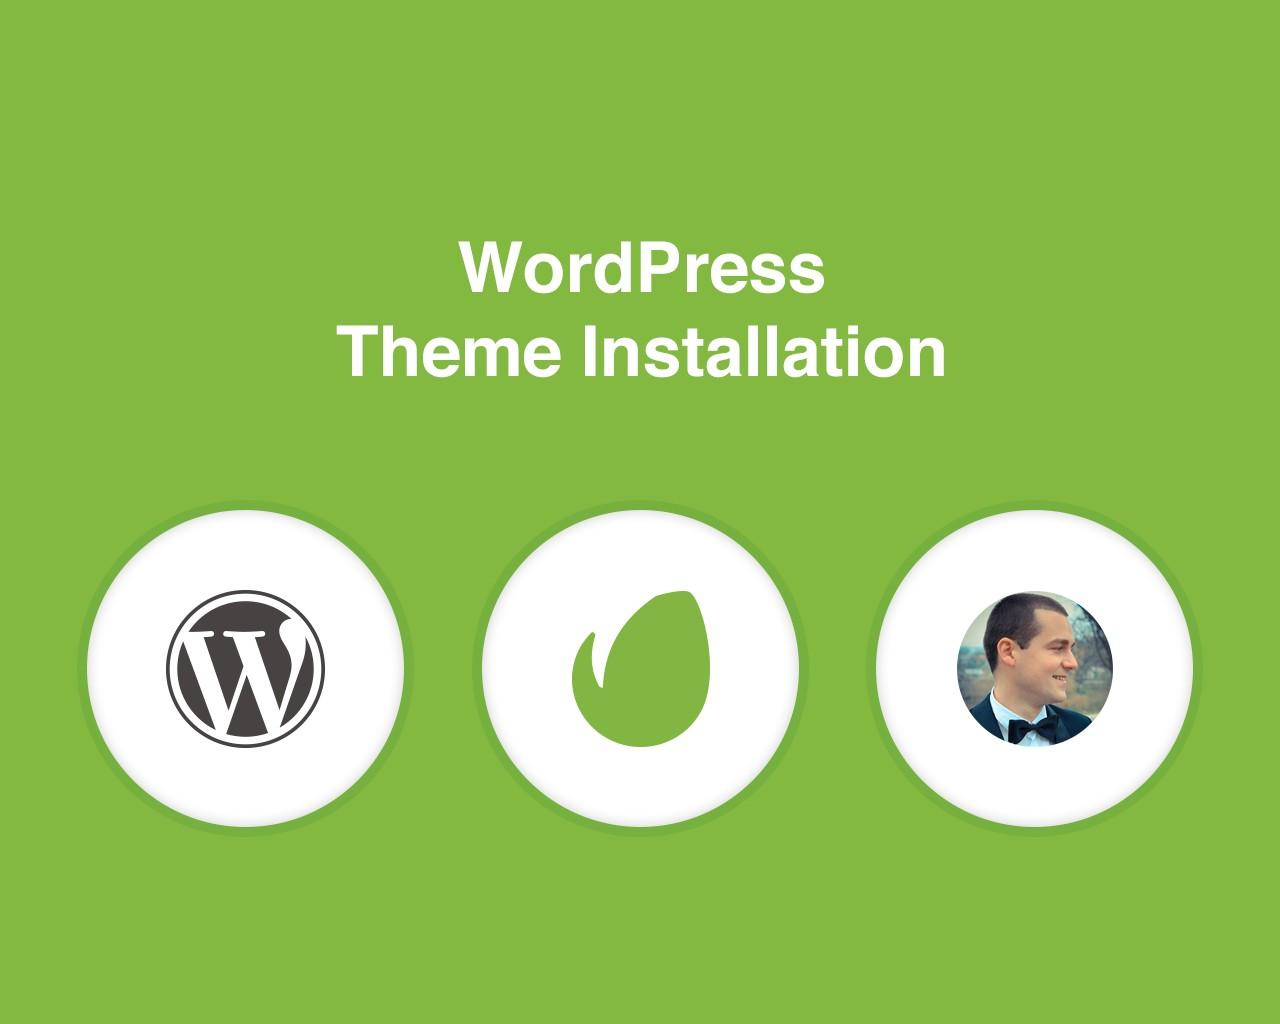 WordPress Theme Installation + Import Demo Data by liviu_cerchez - 64510